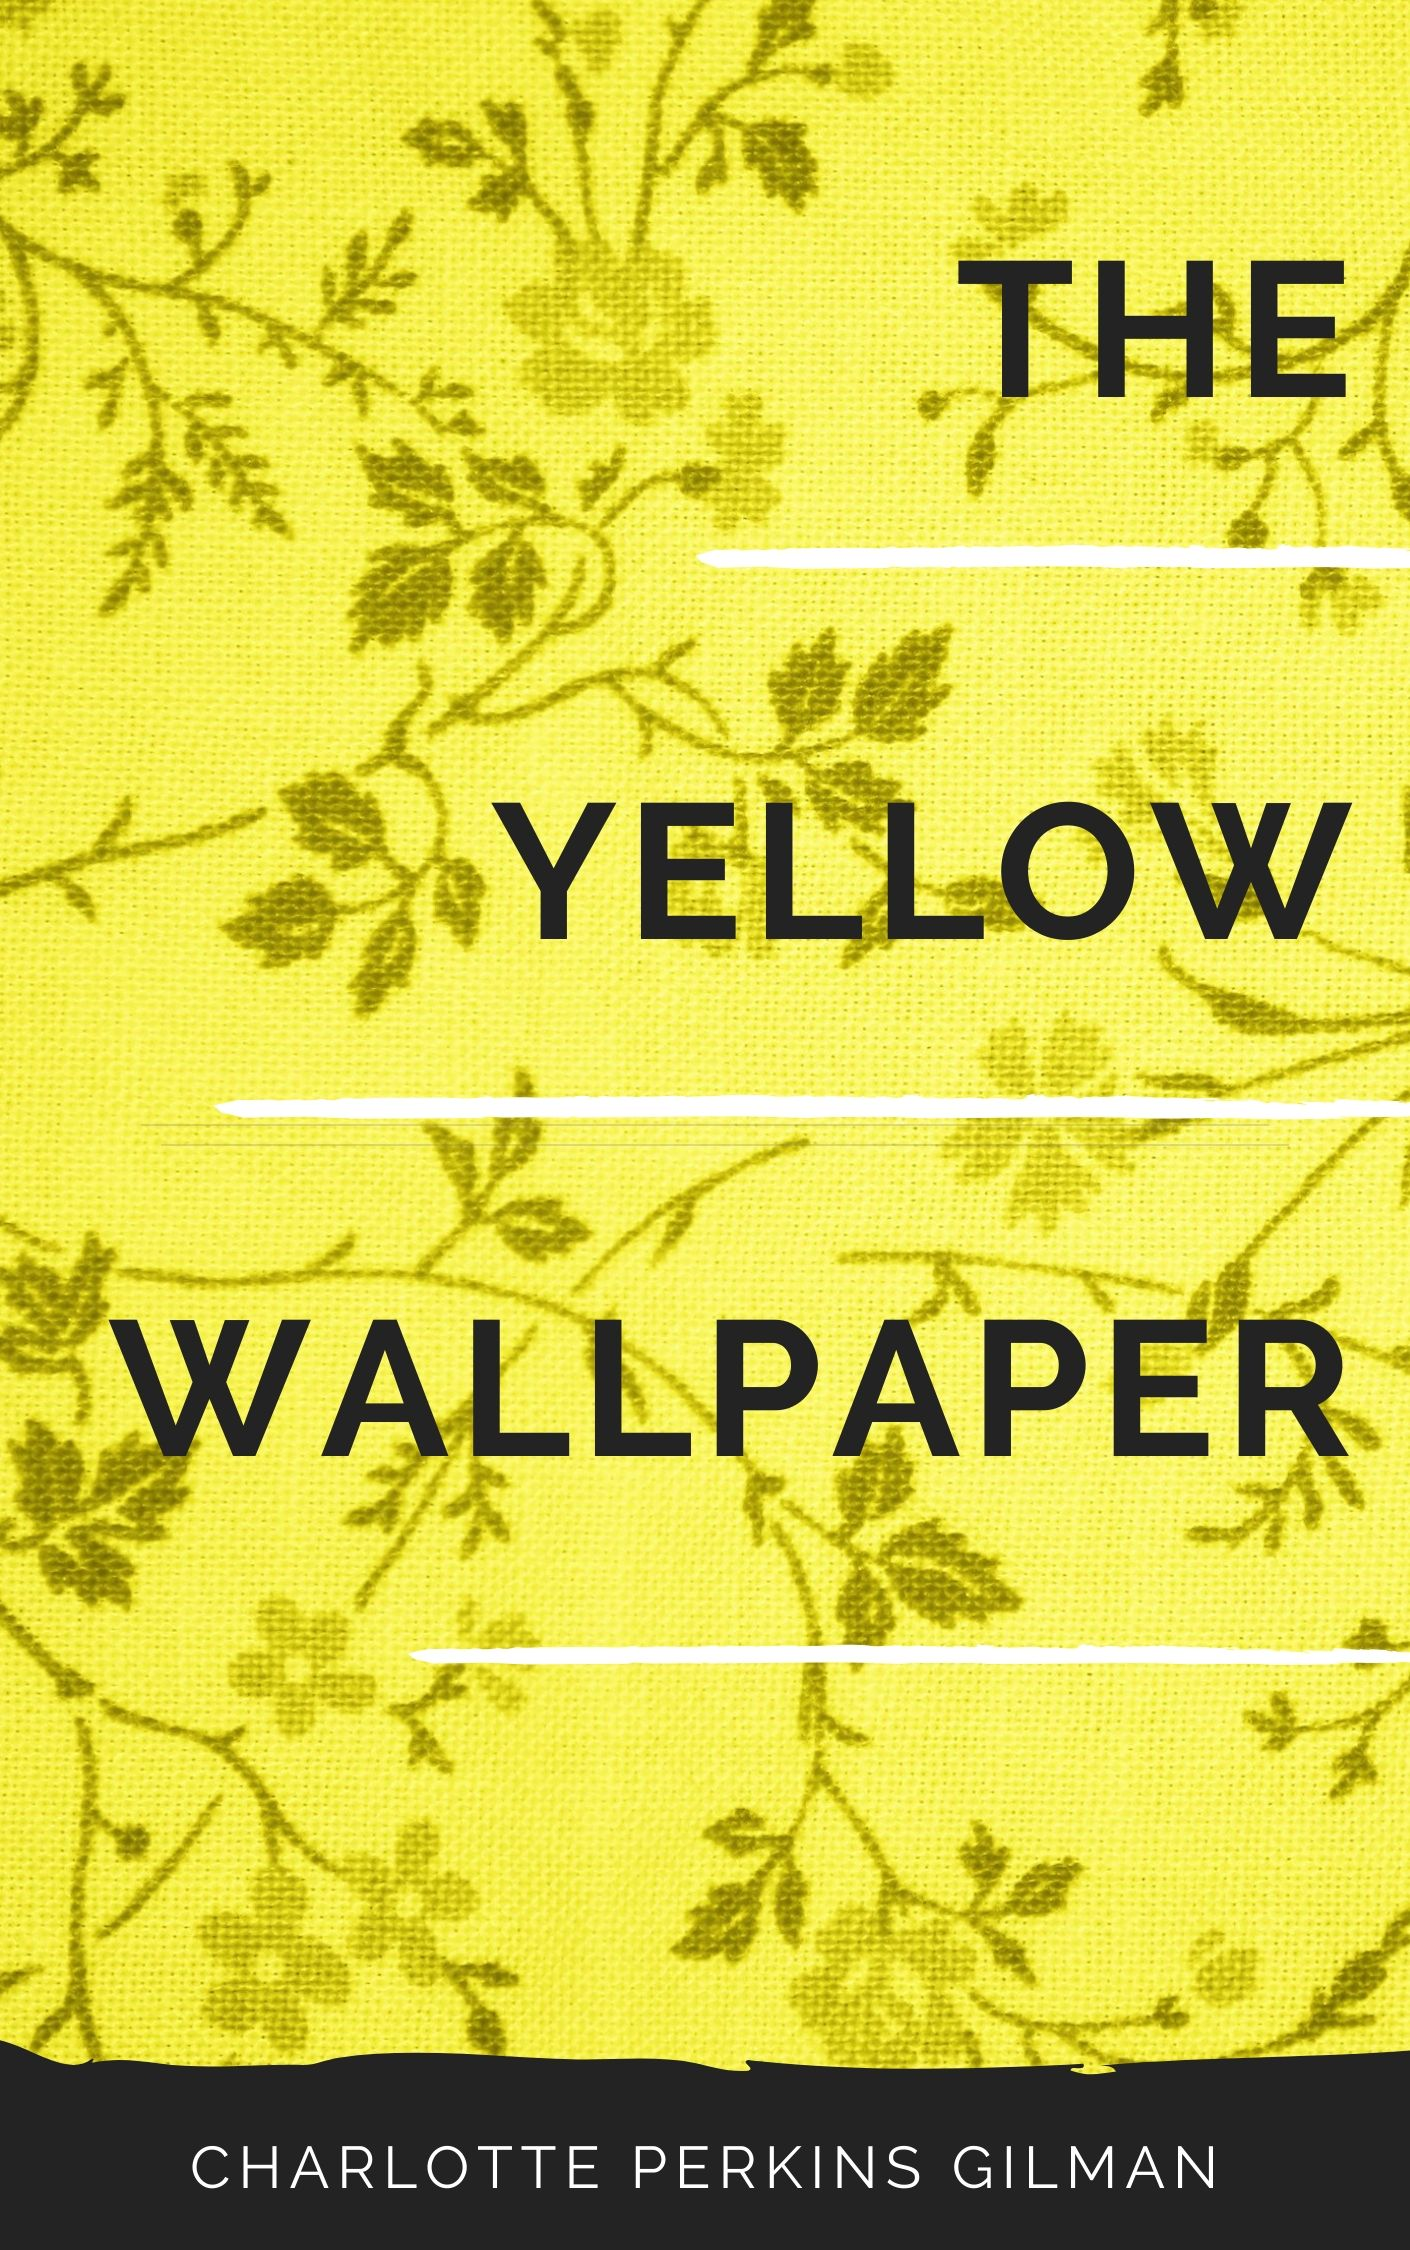 The Yellow Wallpaper By Charlotte Perkins Gilman Ebook